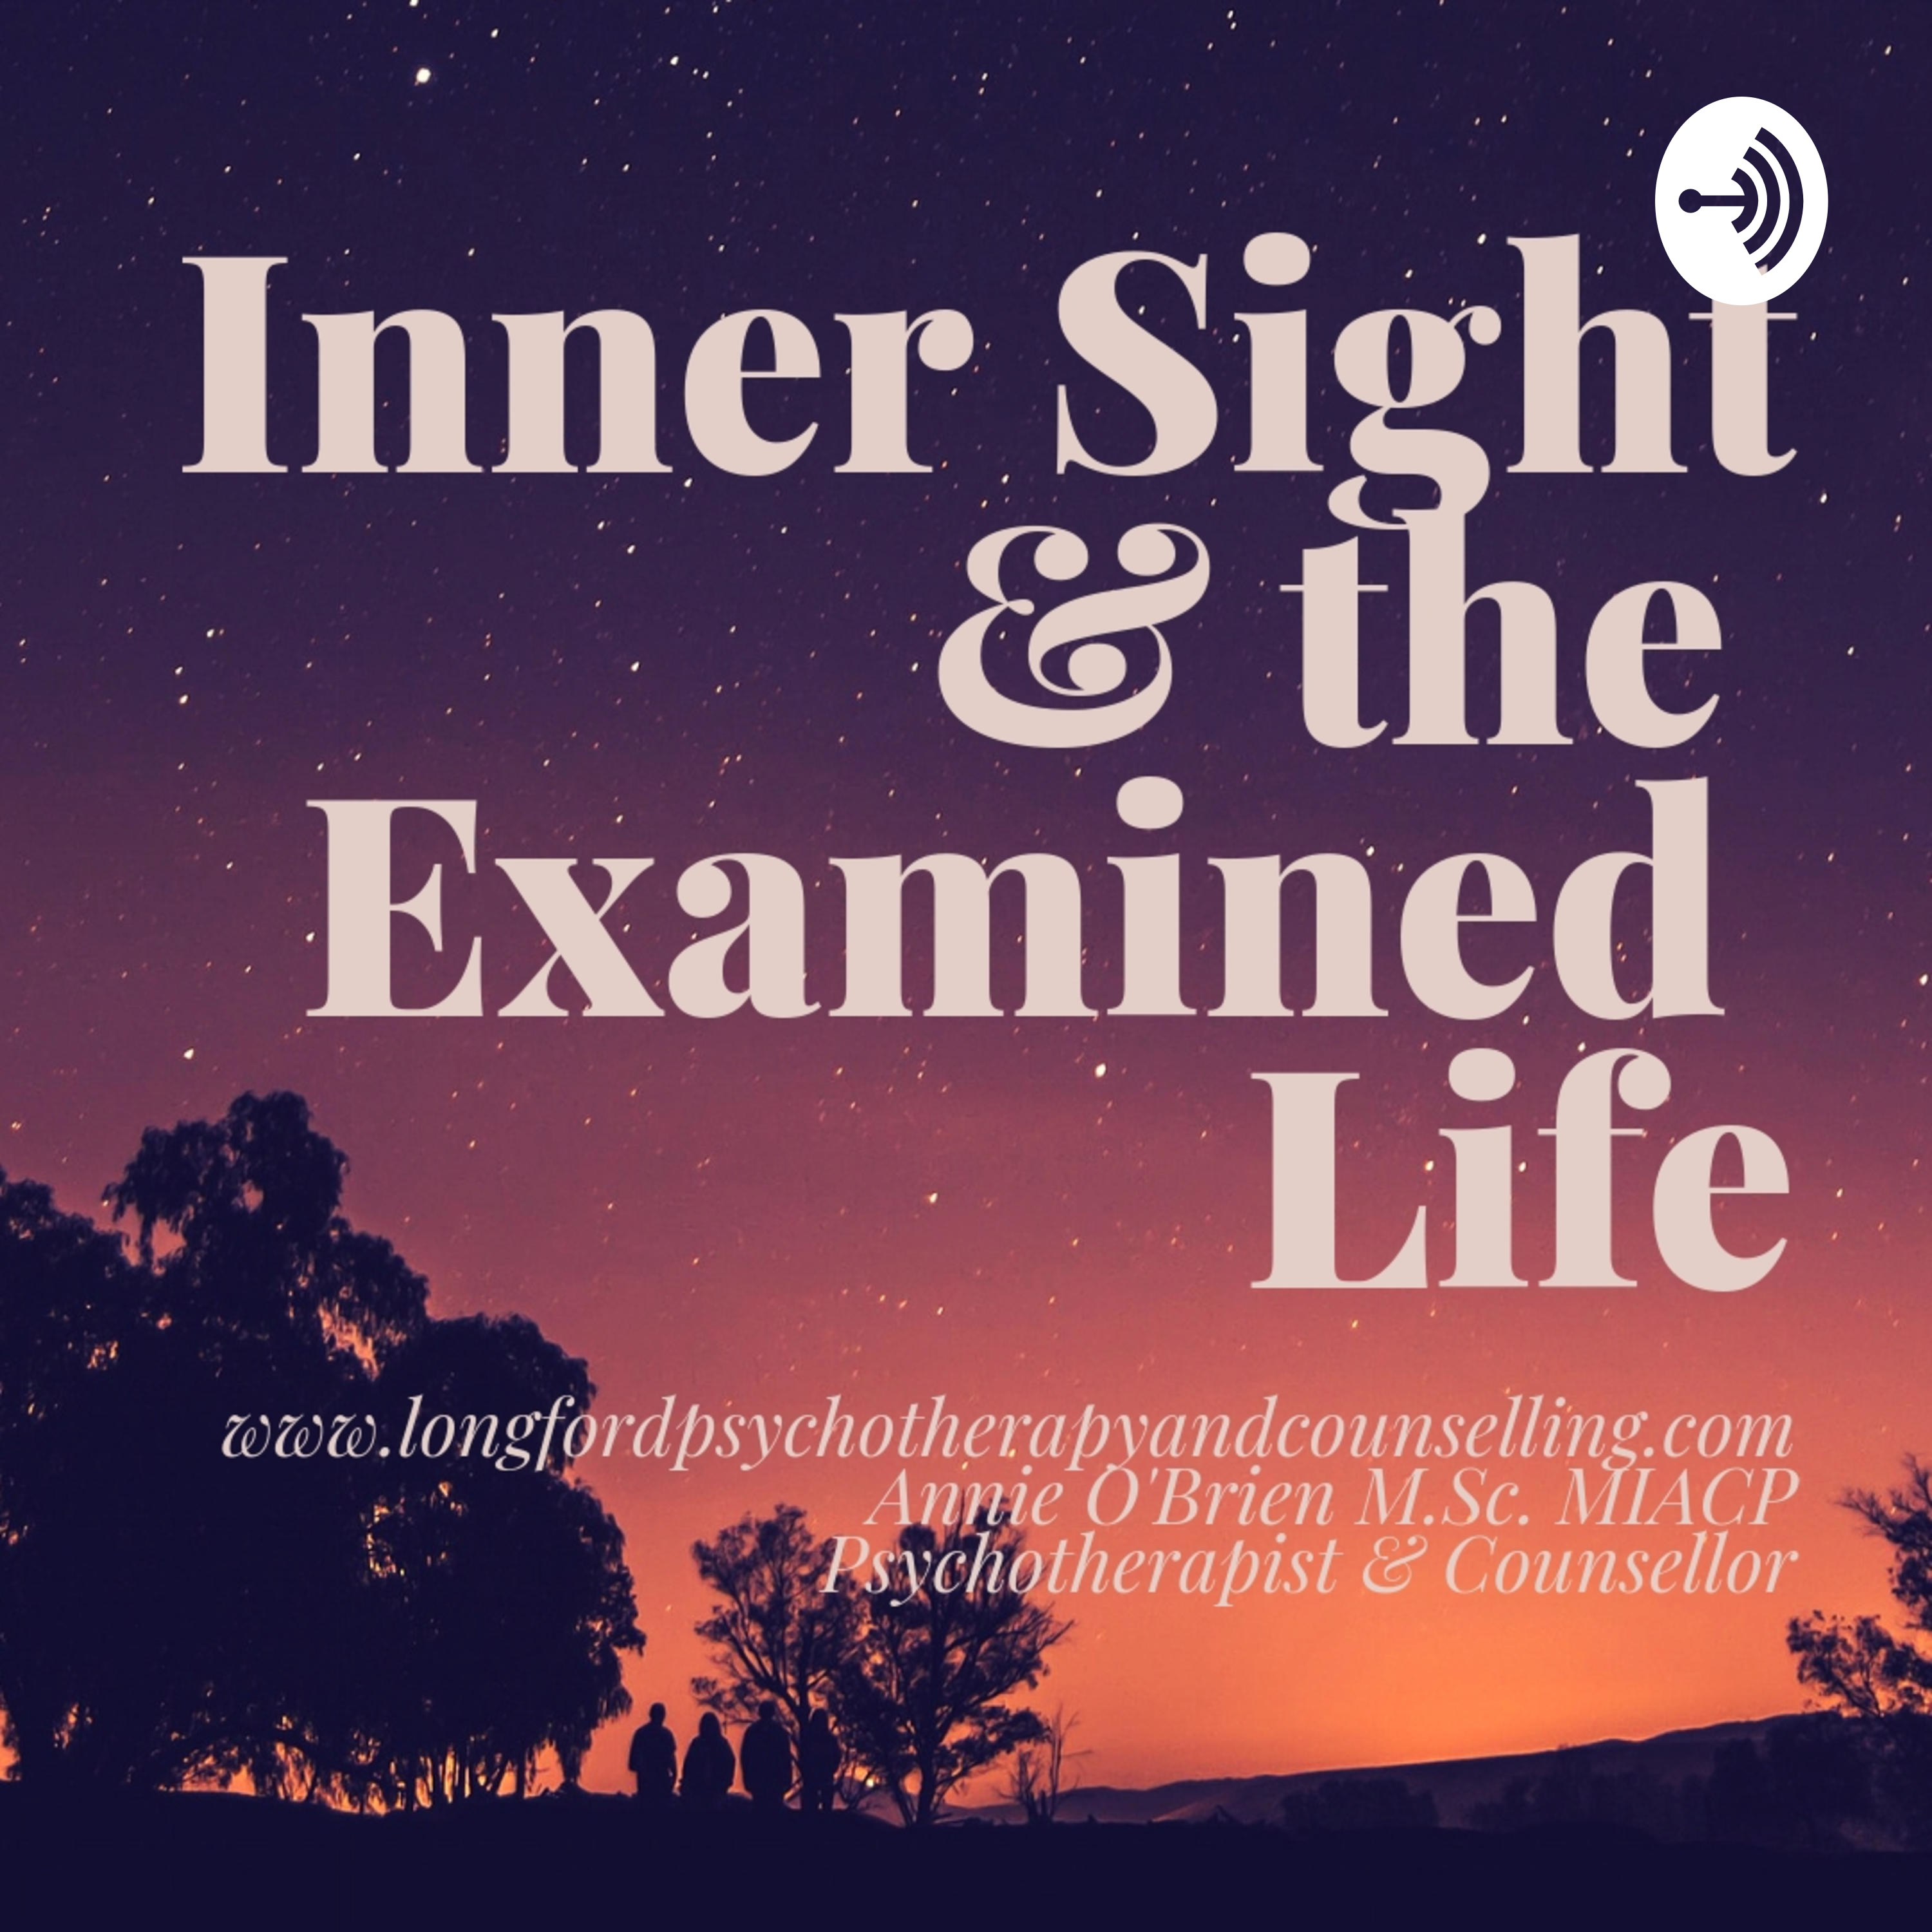 The Examined Life >> Inner Sight The Examined Life Listen Via Stitcher For